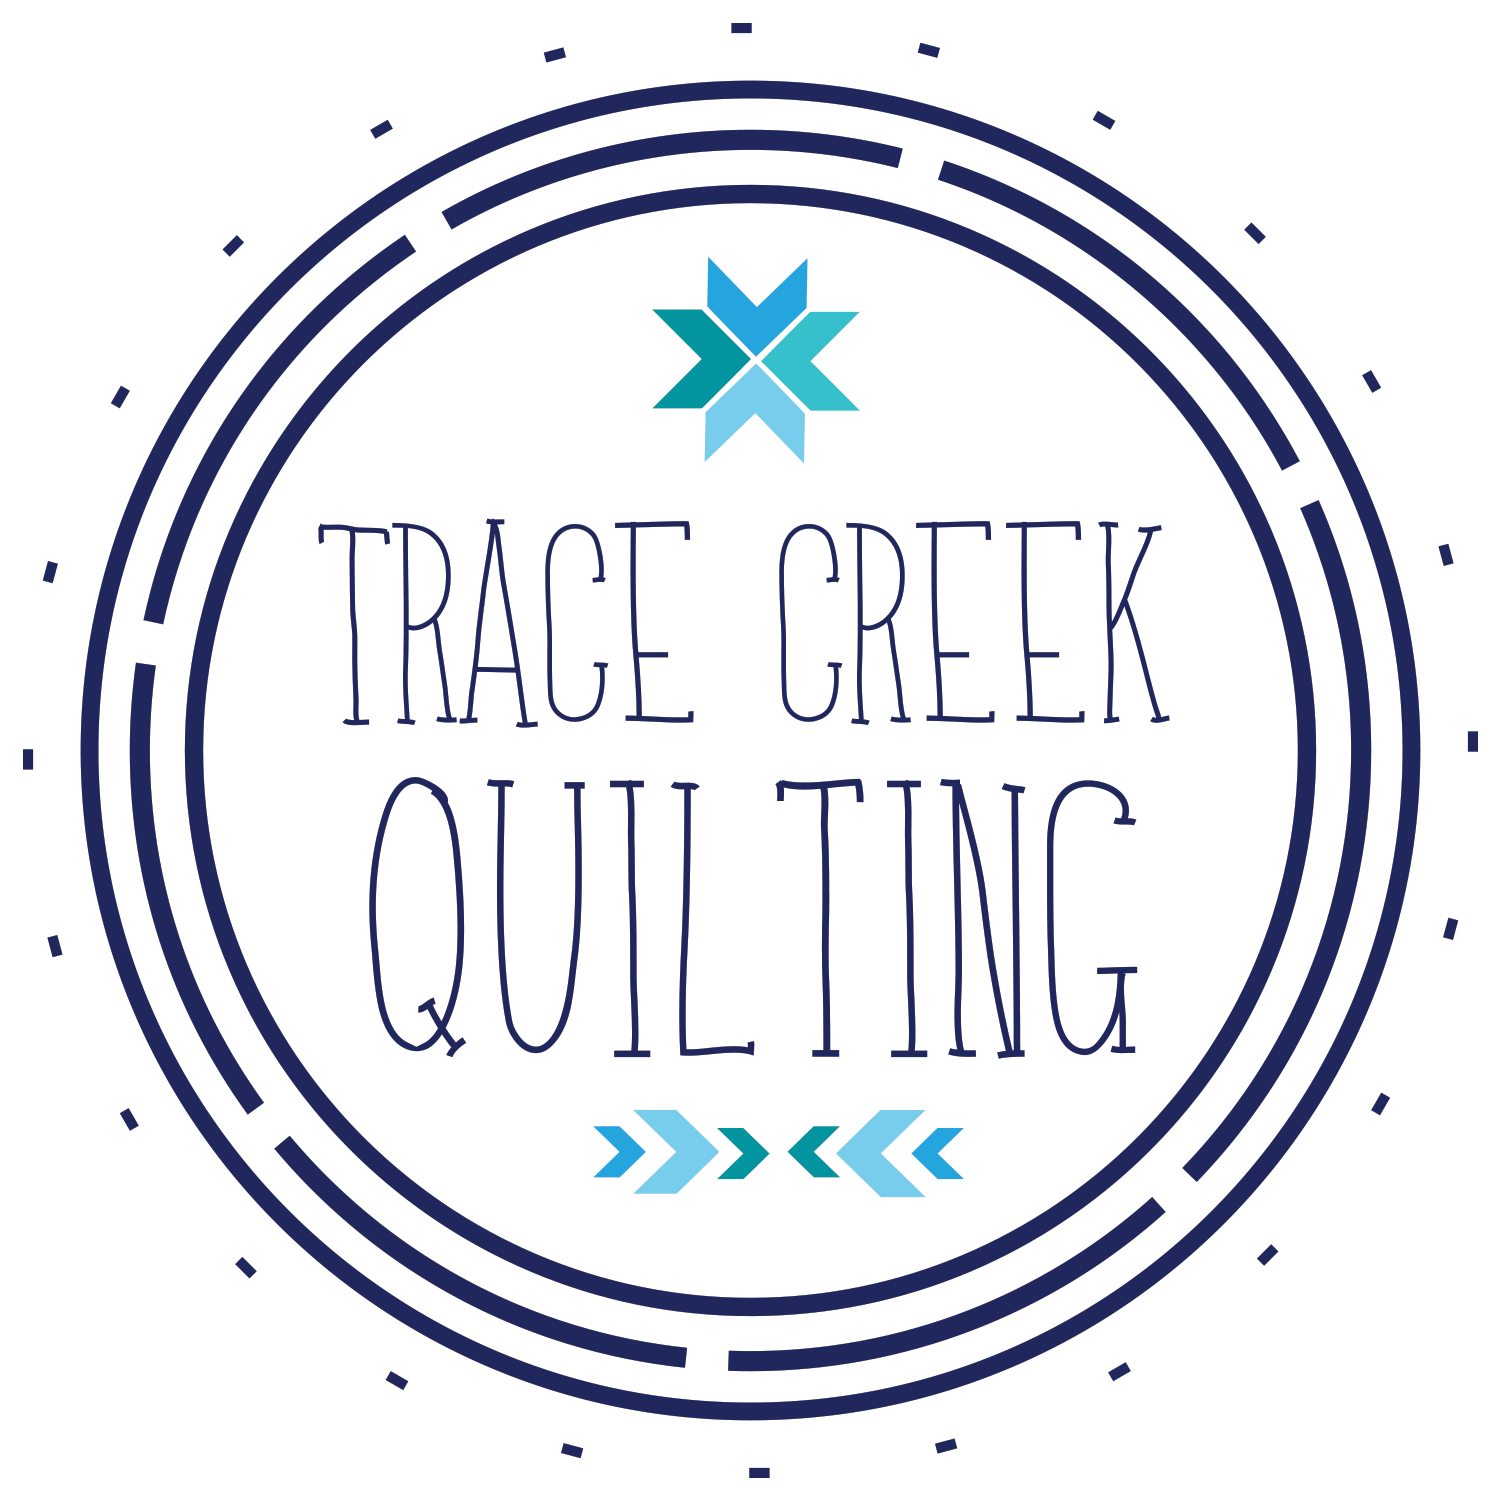 Trace Creek Quilting